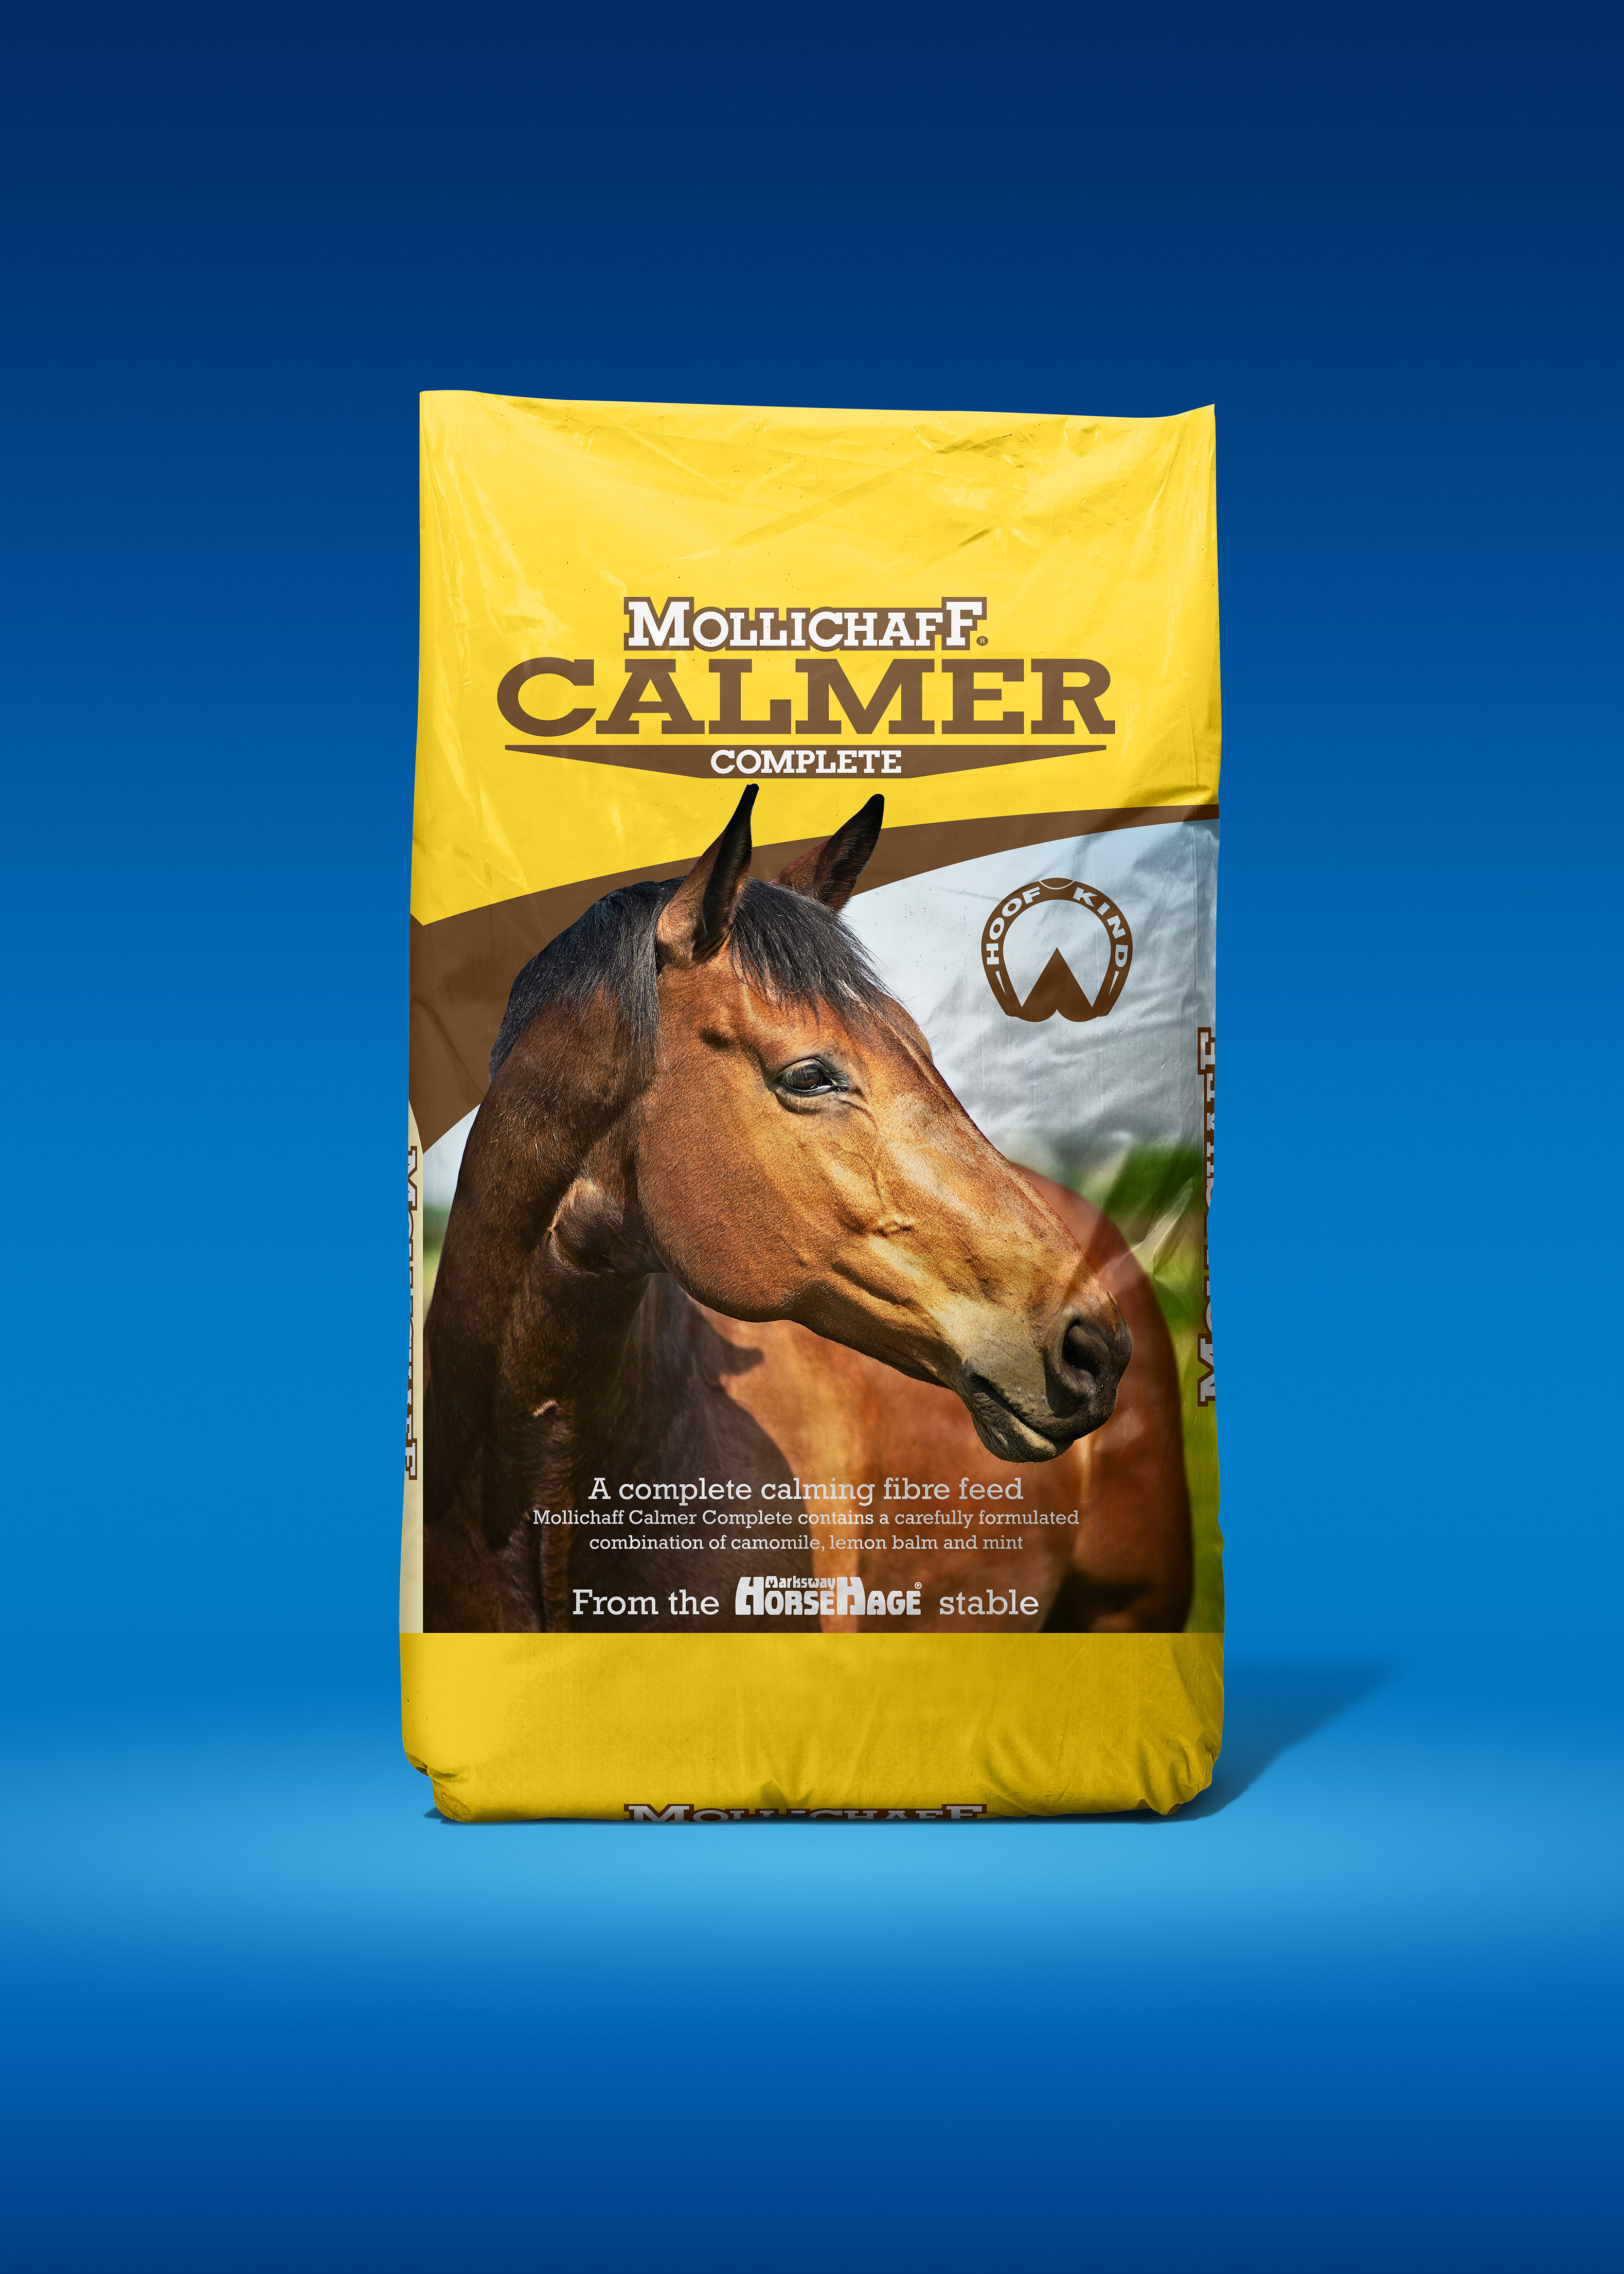 Chill Out With Mollichaff Calmer Complete Everything Horse